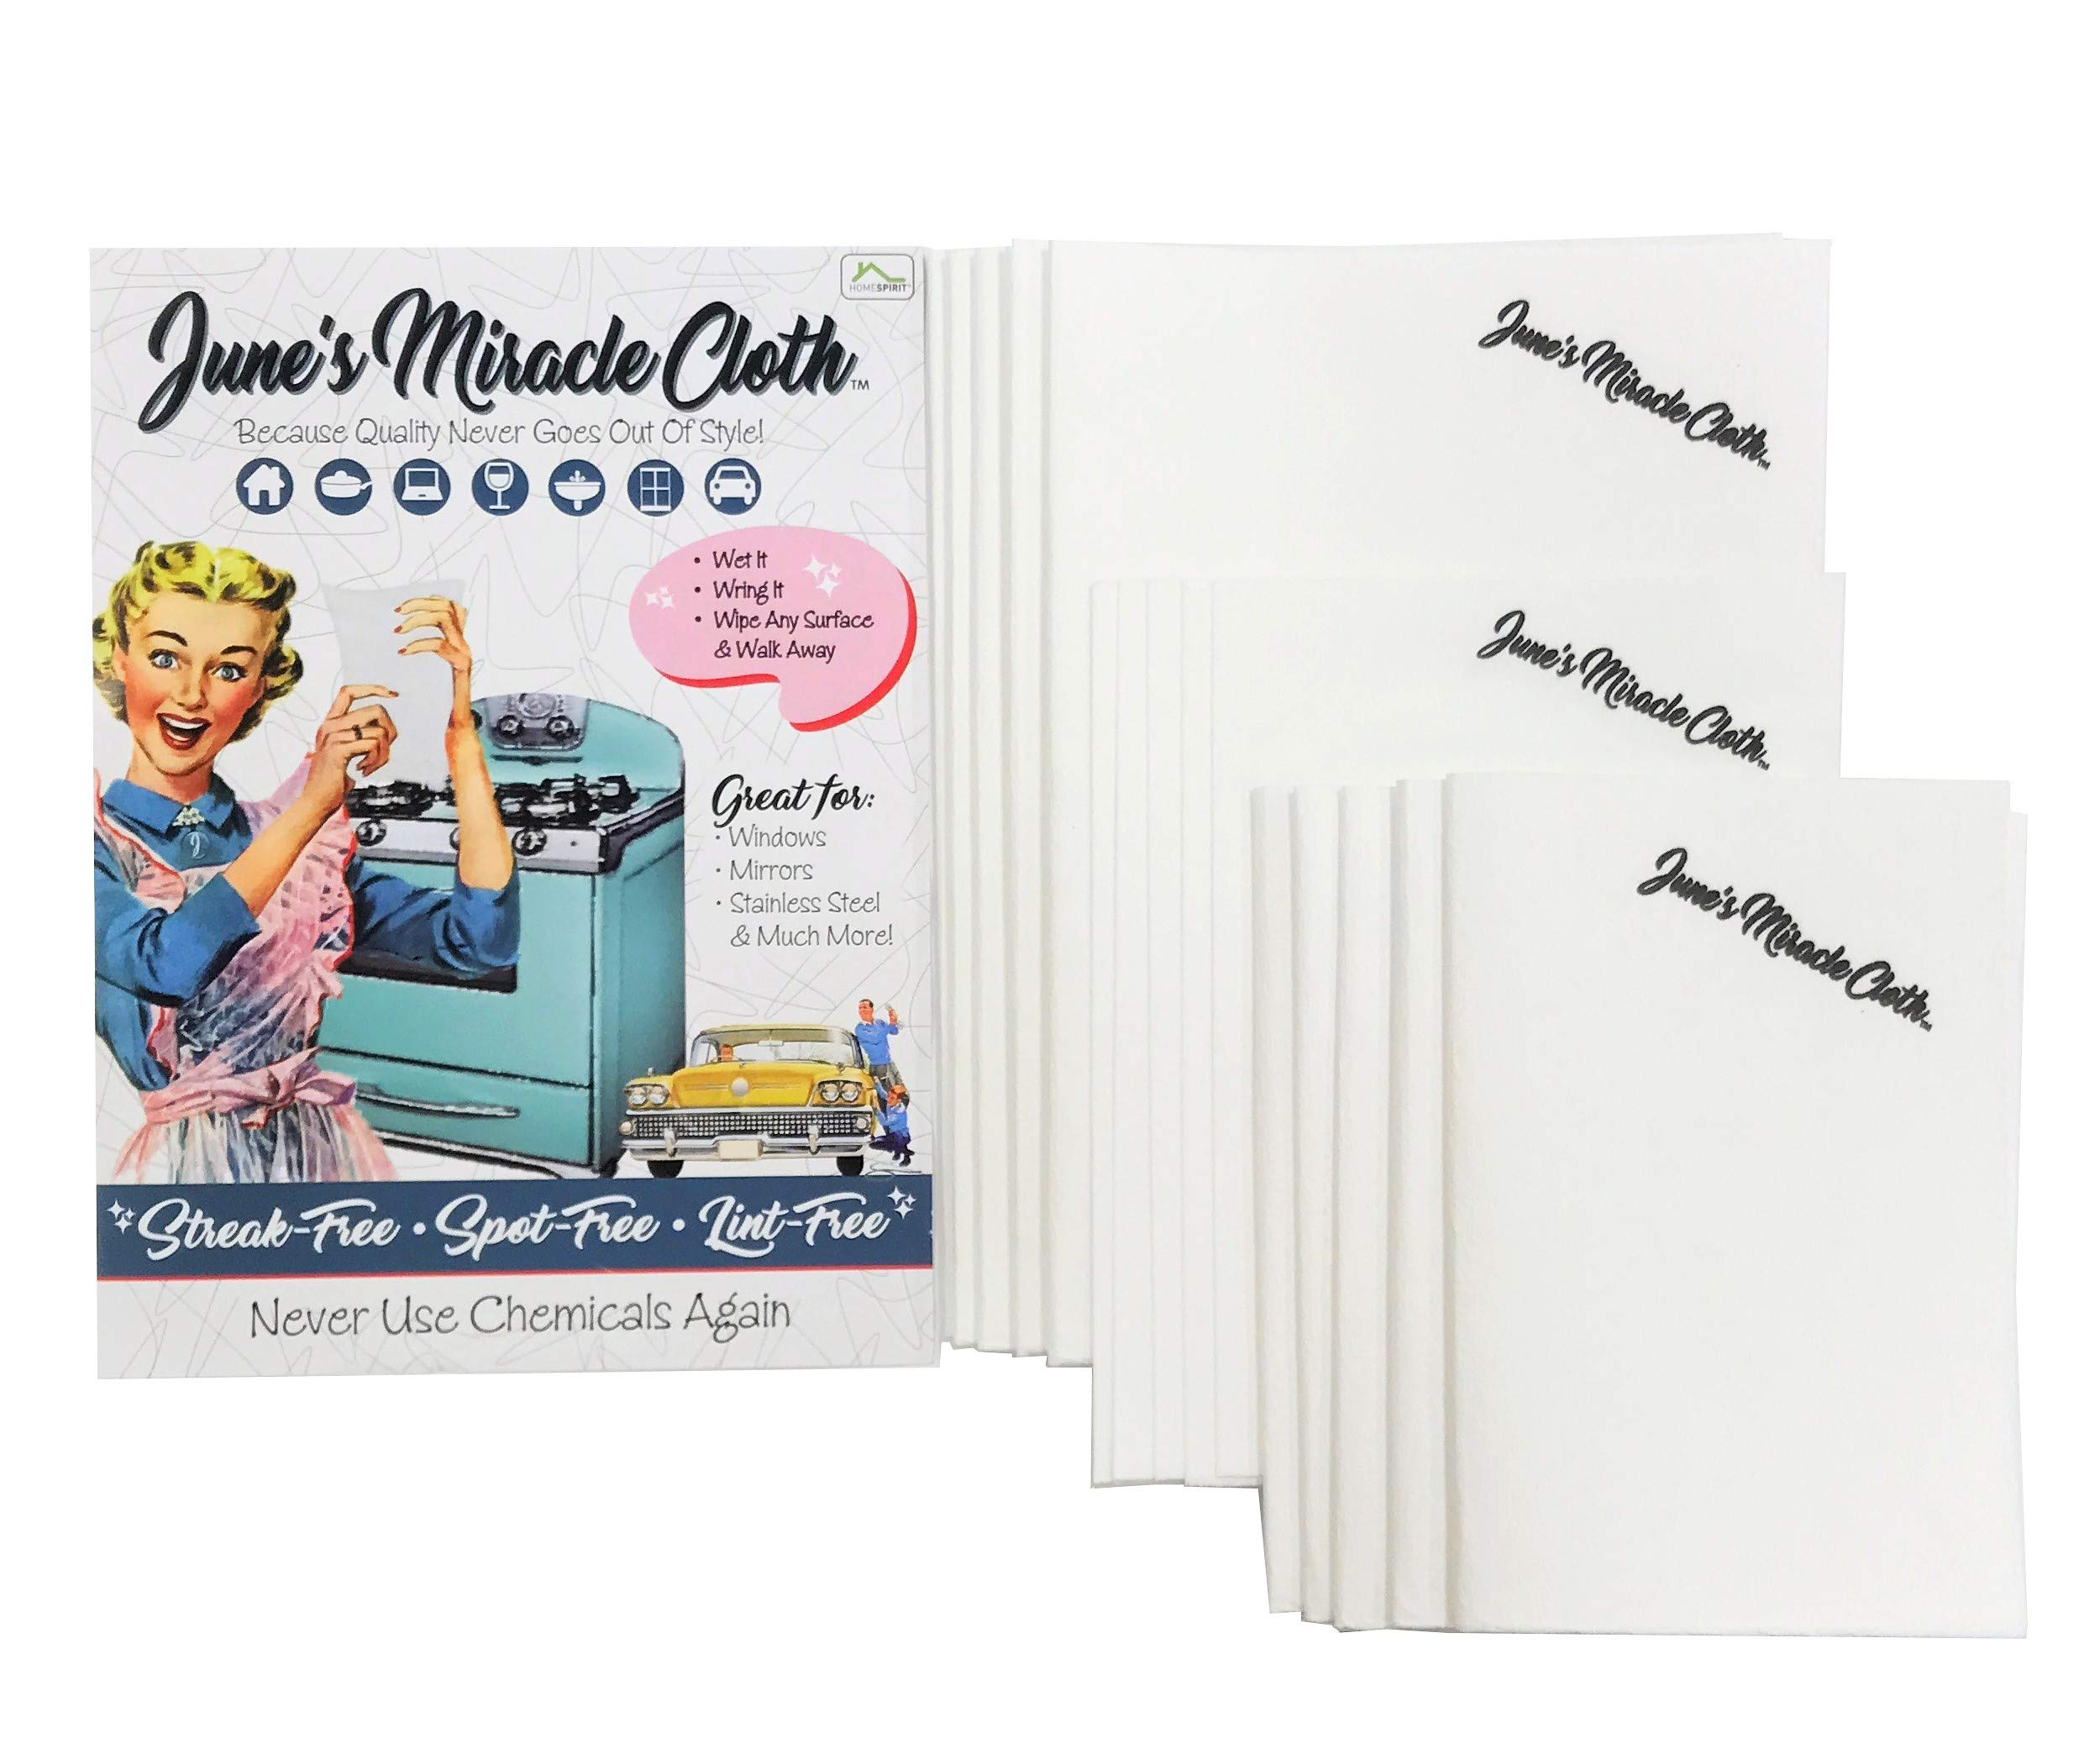 June's Miracle Cloth, Streak-Free Microfiber Cloth, Window Cloth, Car Detailing Towels, Glass Polishing Cloth, Lint-Free Cloths, Stainless Steel Wipes, 15pc by Home Spirit (Image #1)